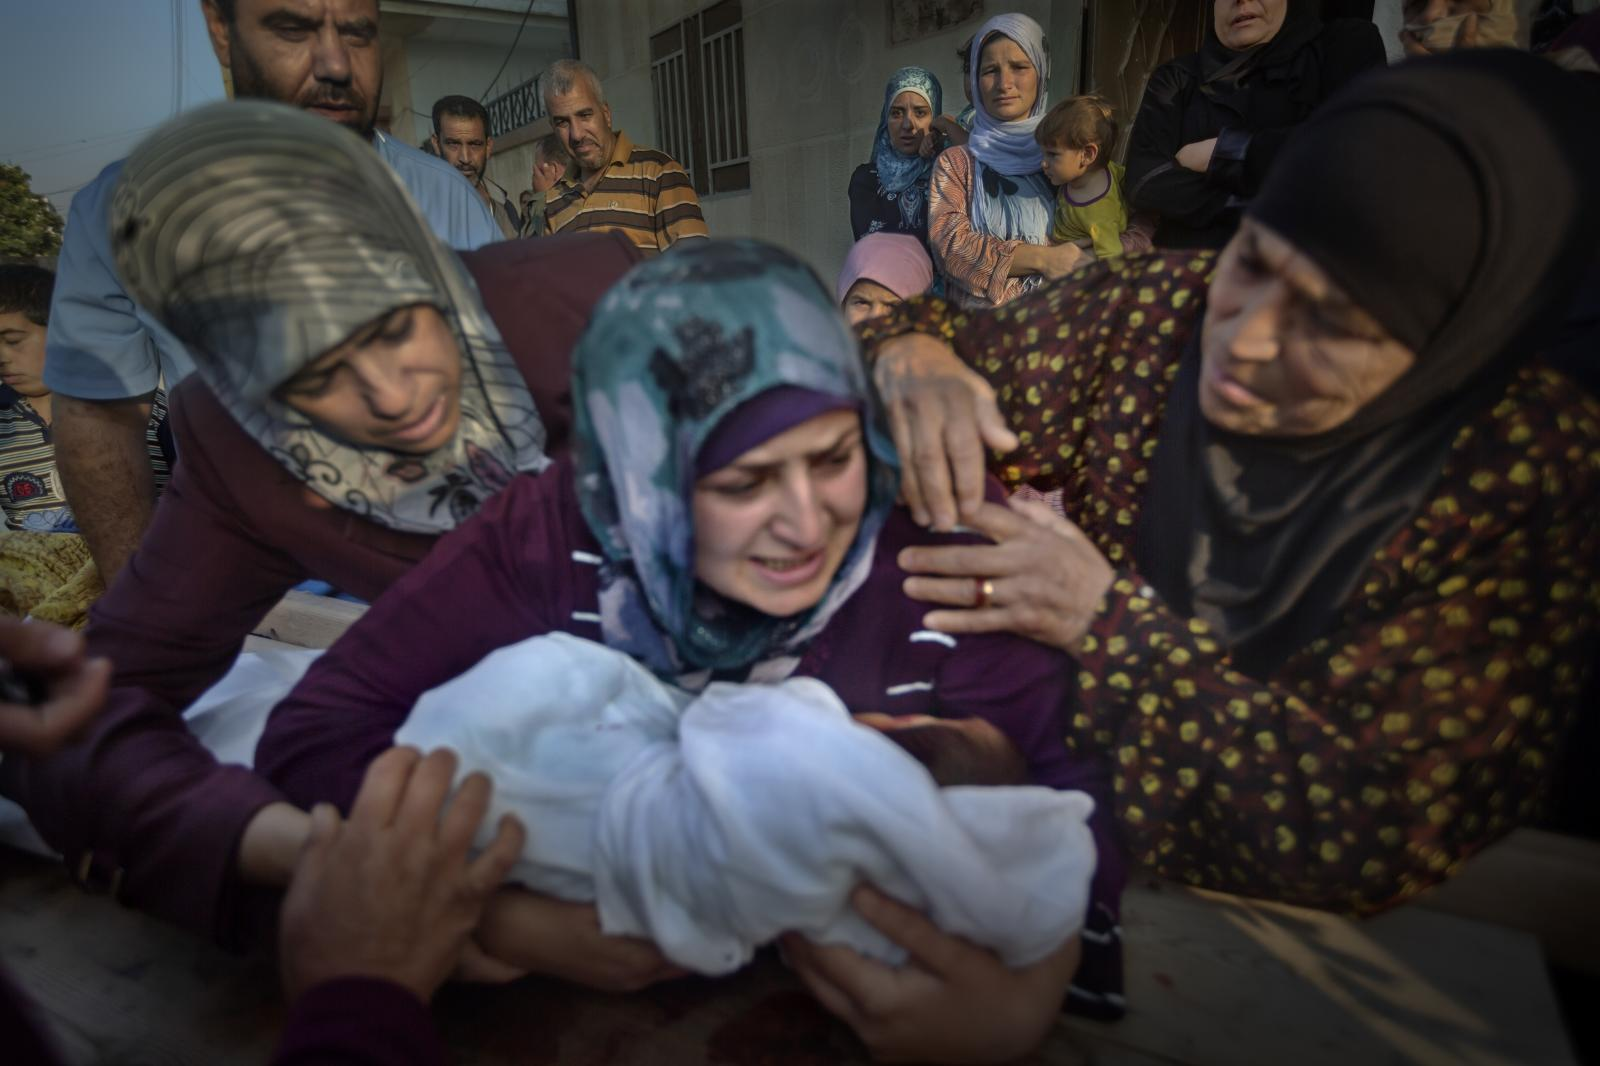 A sniper killed a 5-year-old boy named Yazan Gassan Rezk with a single shot to the head, at an access point to the city of Al Qasir. His mother cries as she clutches her son's corpse before the funeral. That same day, 6 people were killed and 37 wounded by bombings in the city surrounded by forces loyal to Bashar al Assad while helicopters circled overhead. This city was a rebel stronghold in Homs province (Syria, 2012)